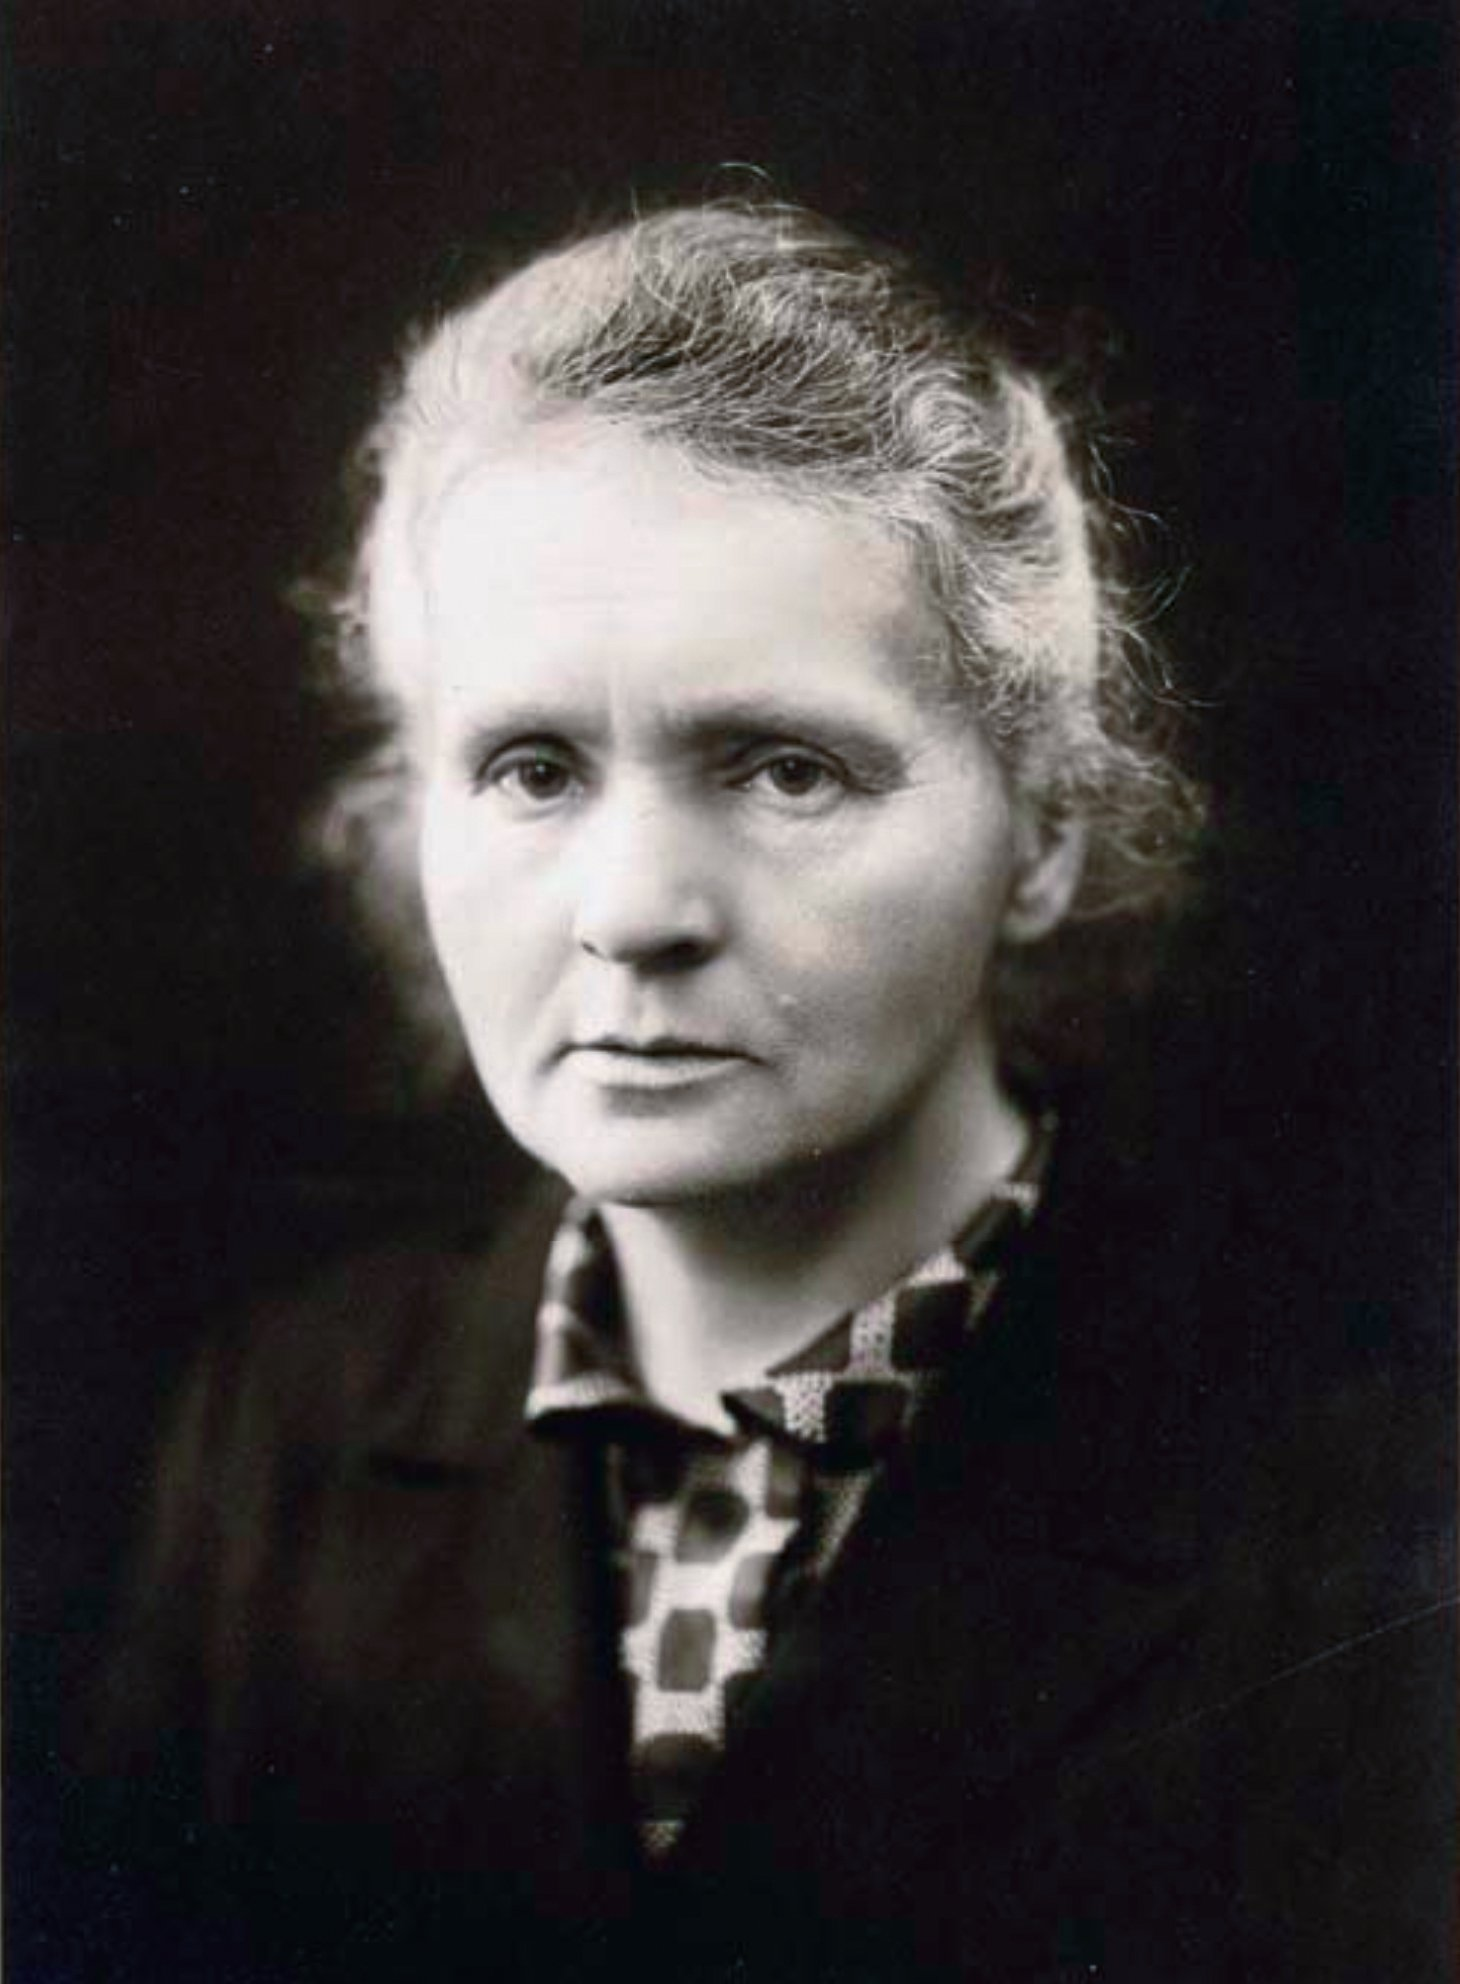 https://the-unexpected-cosmology.nyc3.digitaloceanspaces.com/wp-content/uploads/2020/12/12225450/6_Marie_Curie_c1920.jpg